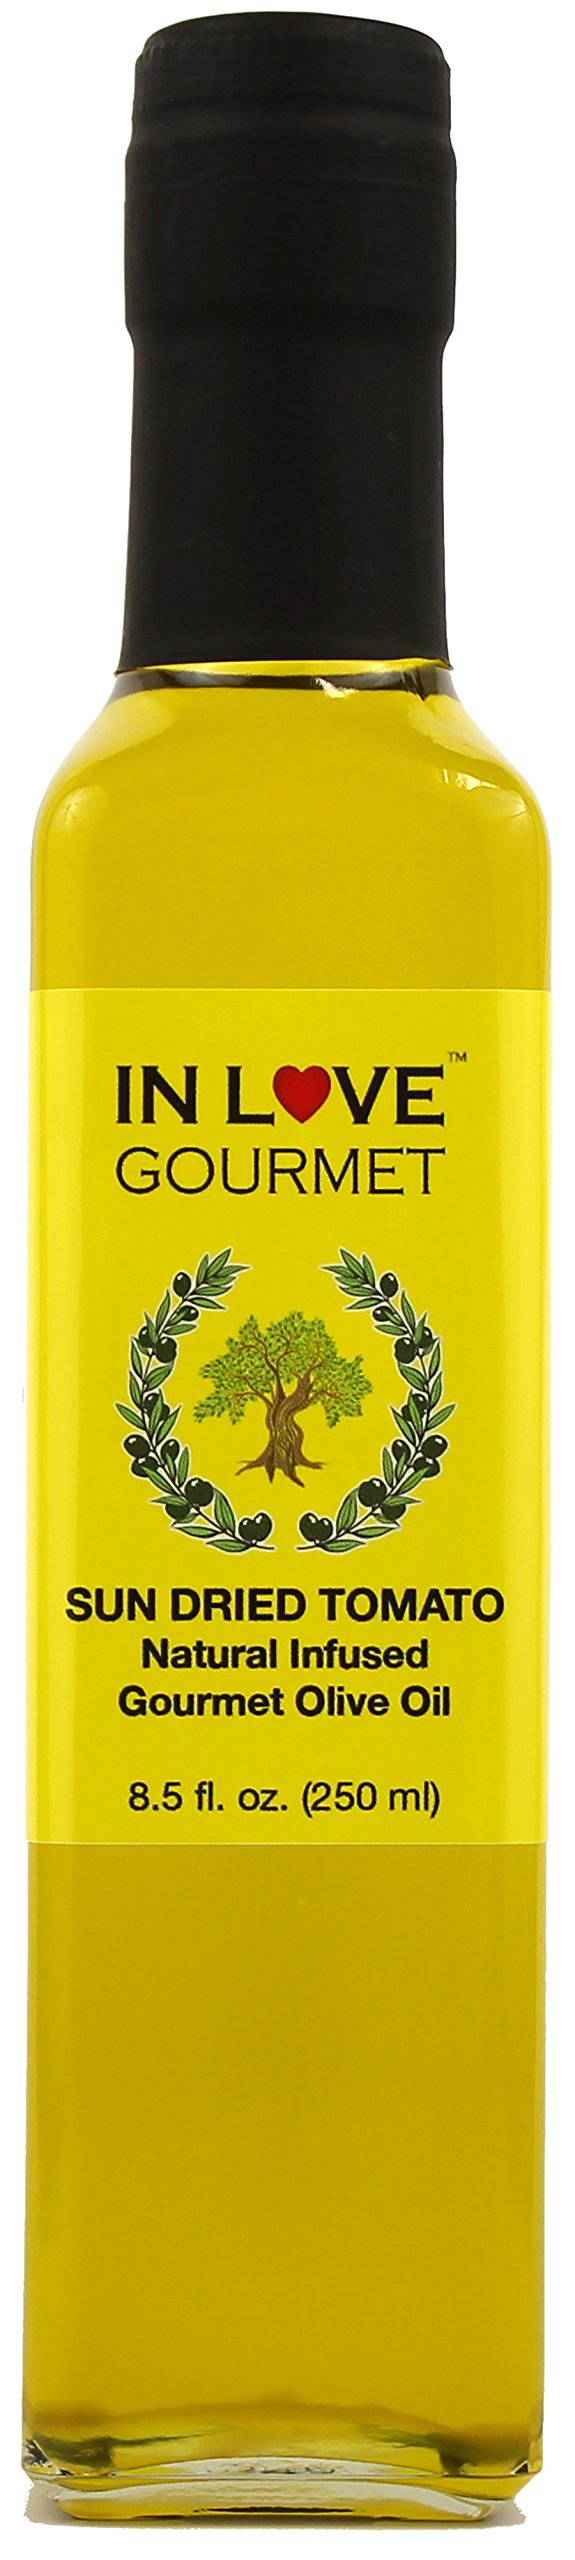 In Love Gourmet Sun-Dried Tomato Natural Flavor Infused Olive Oil 250ML/8.5oz Try it in Salads, Pasta, or on a Toasted Piece of Bread